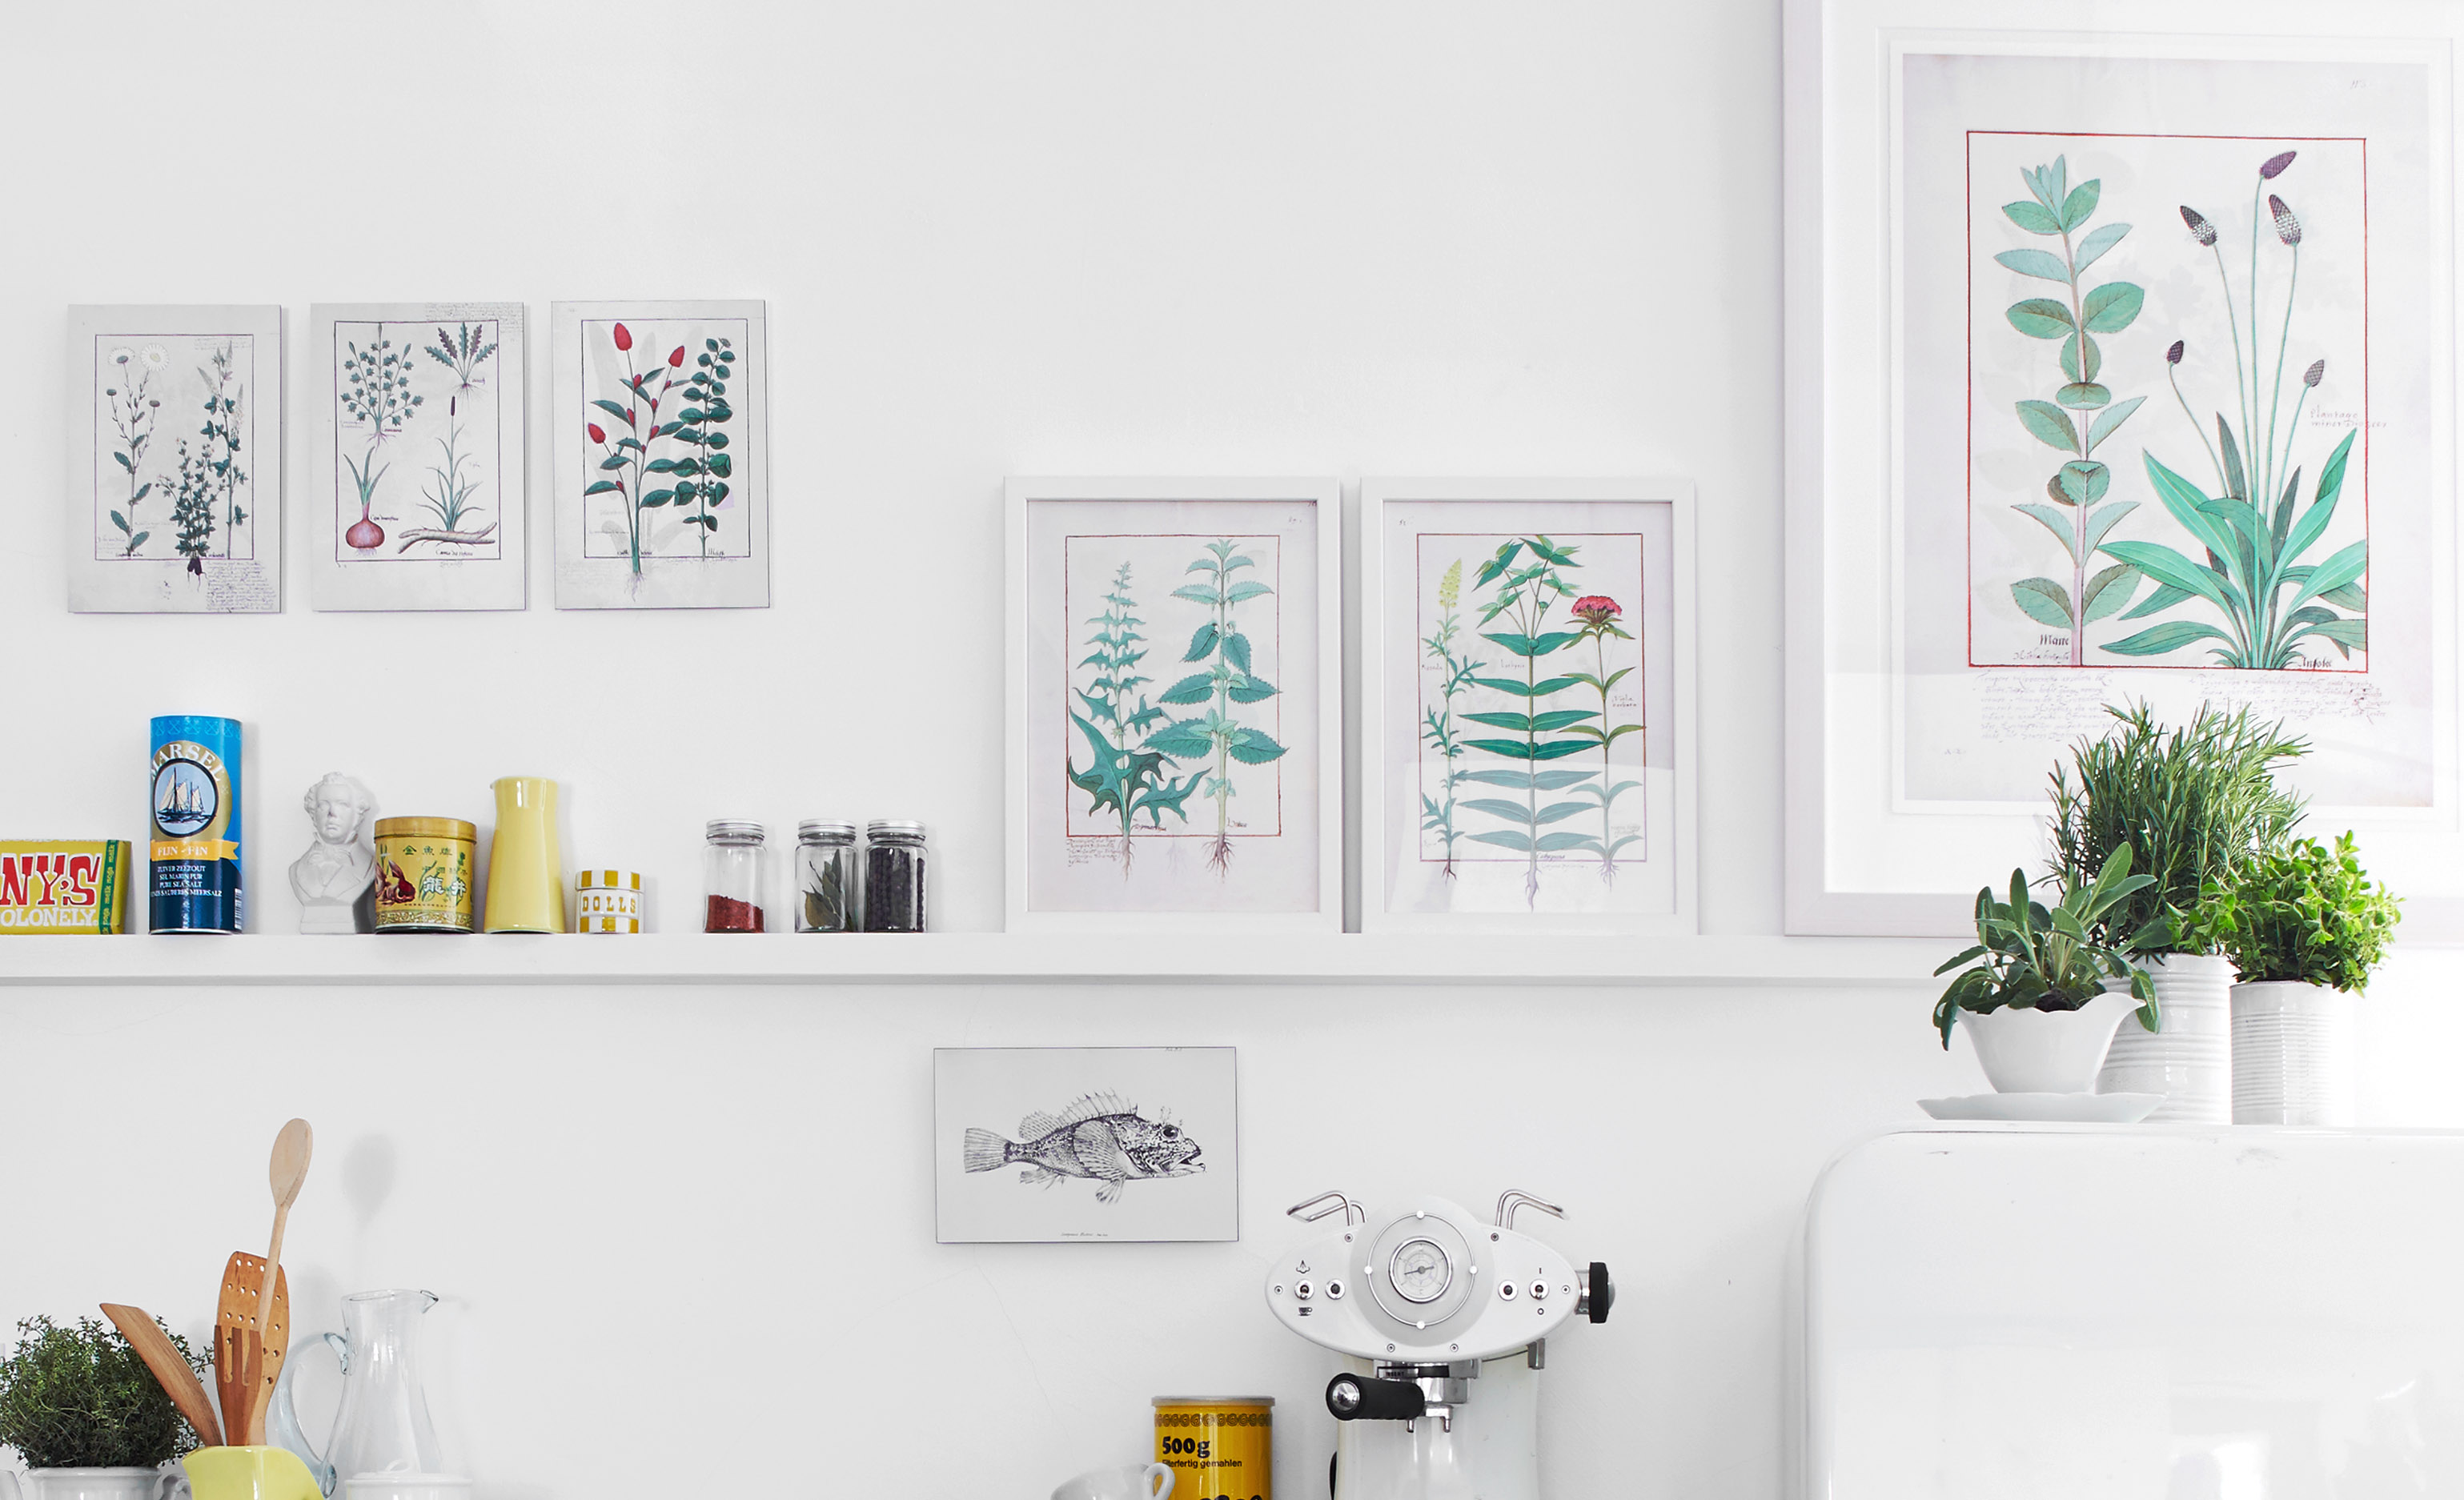 Hang pictures on the wall properly, hanging: Picture rail. The flexible variant for wall pictures and works of art.